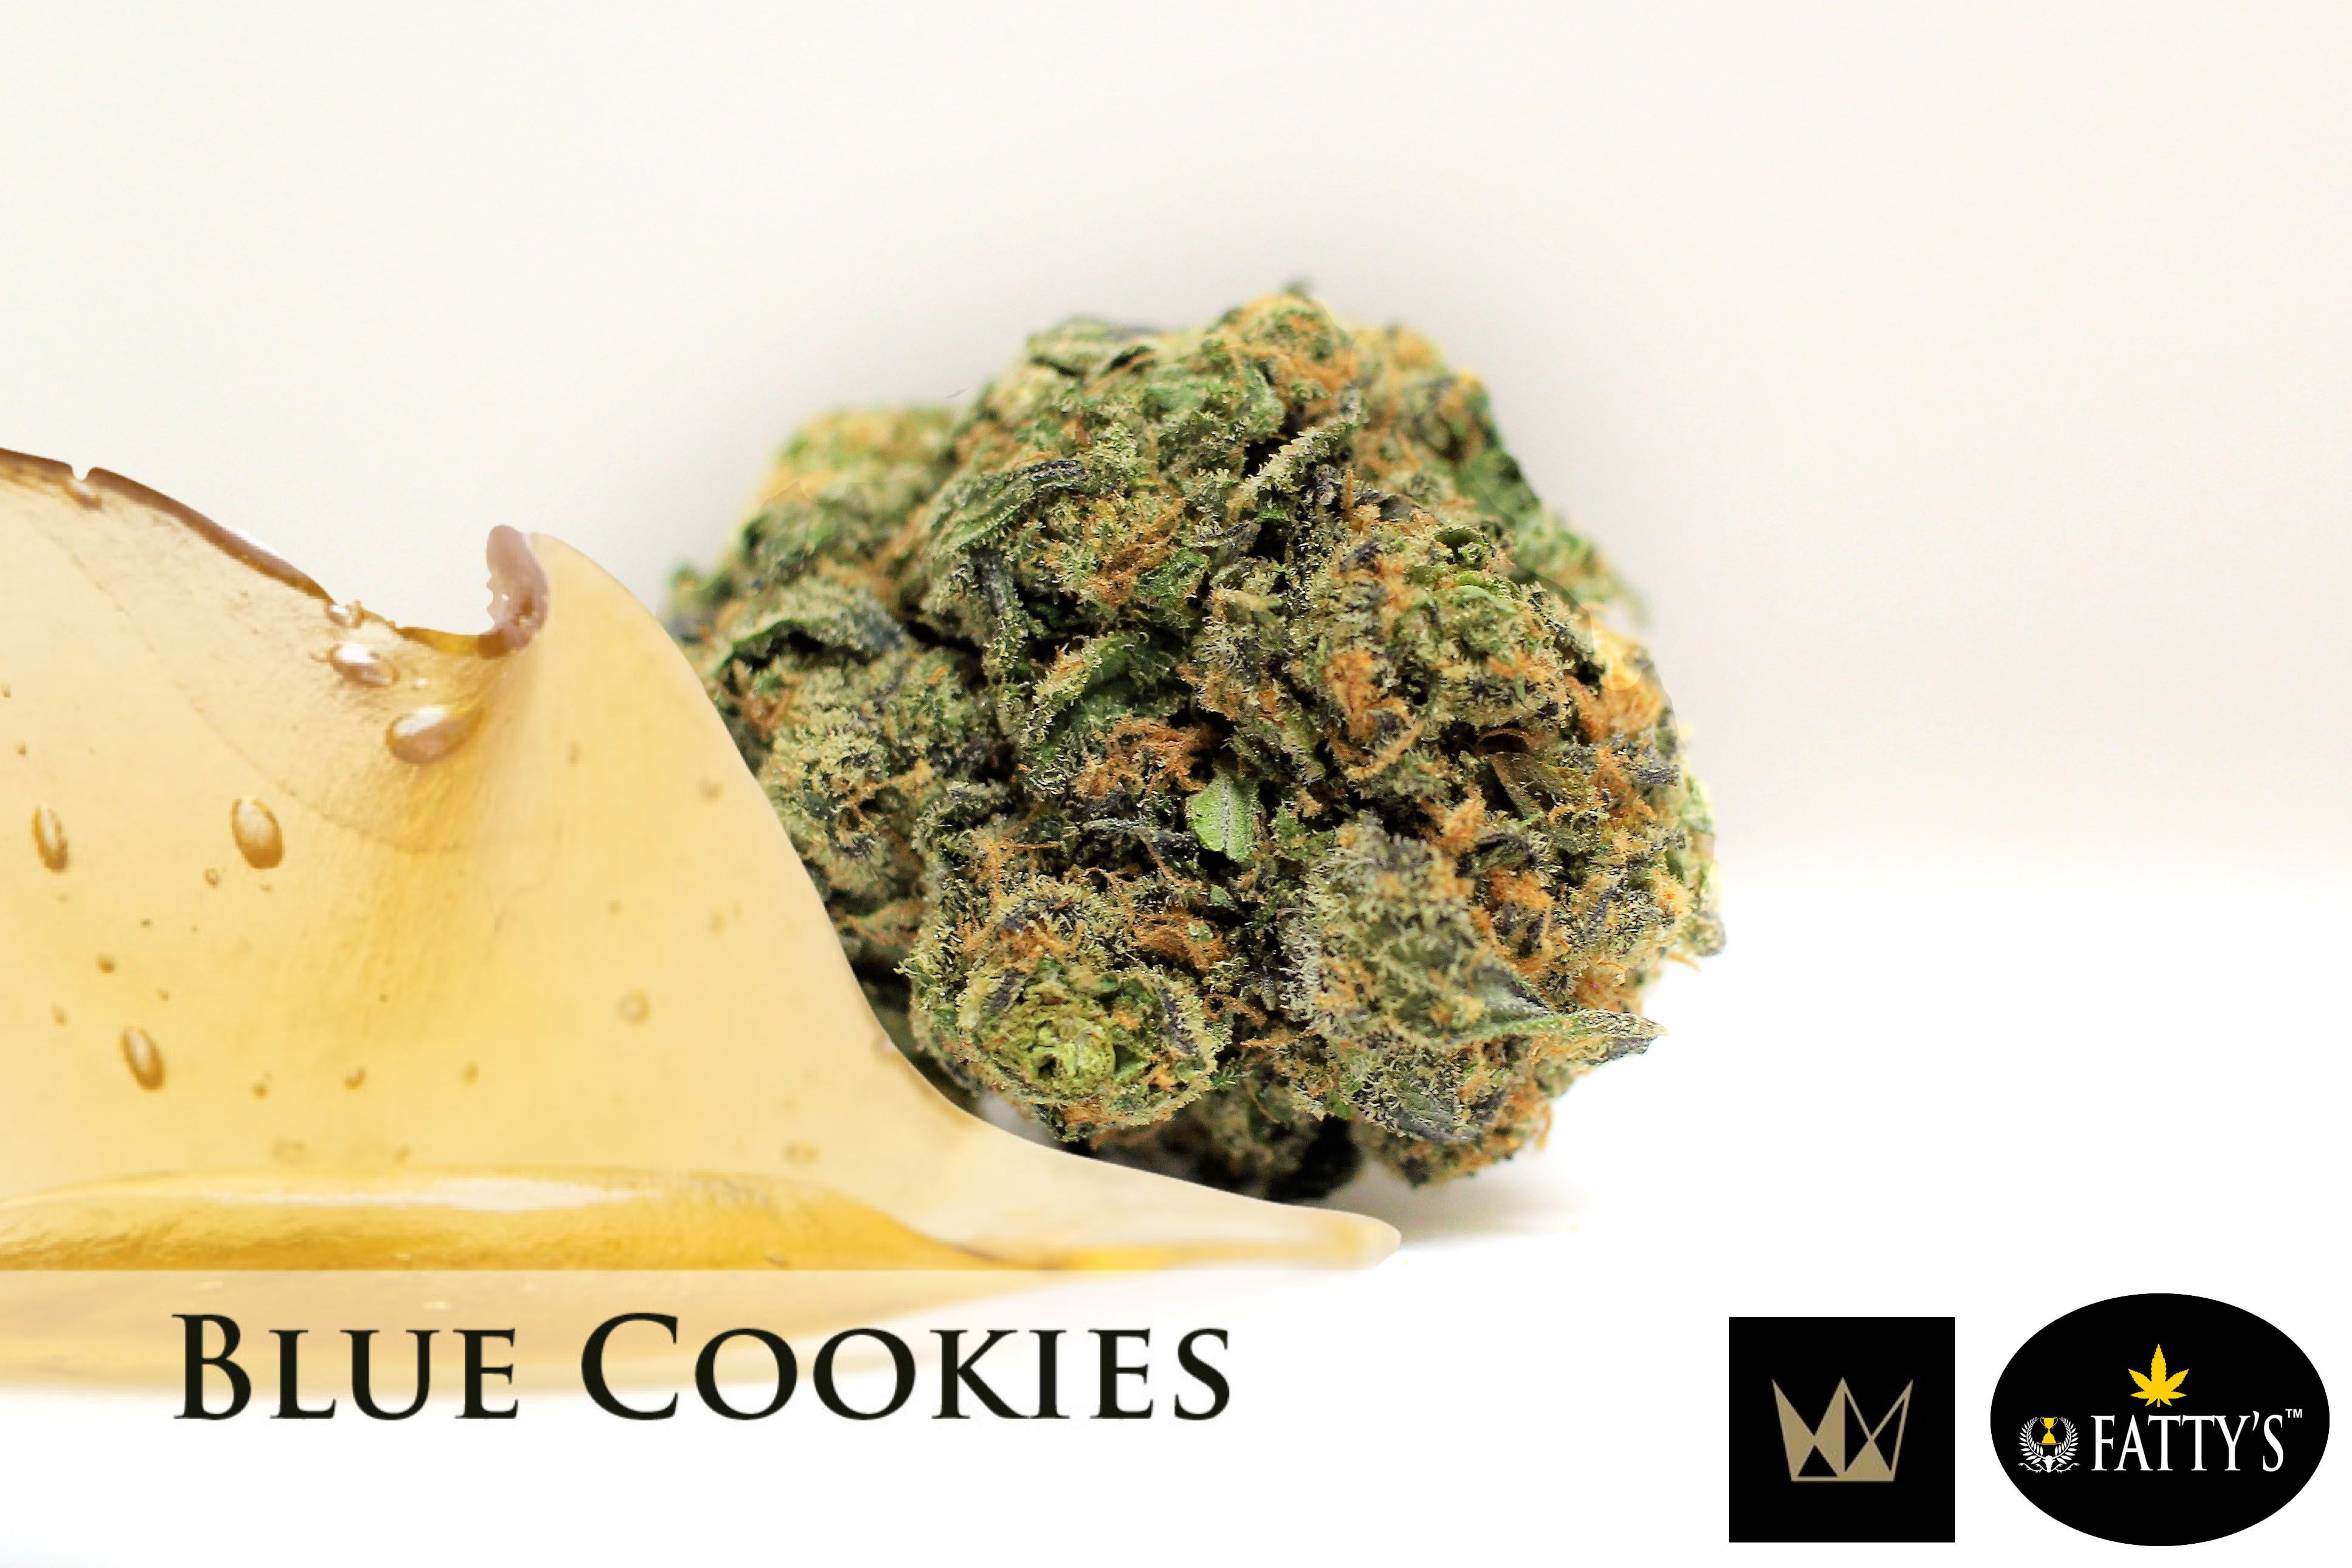 *BLUE COOKIES*  SPECIAL